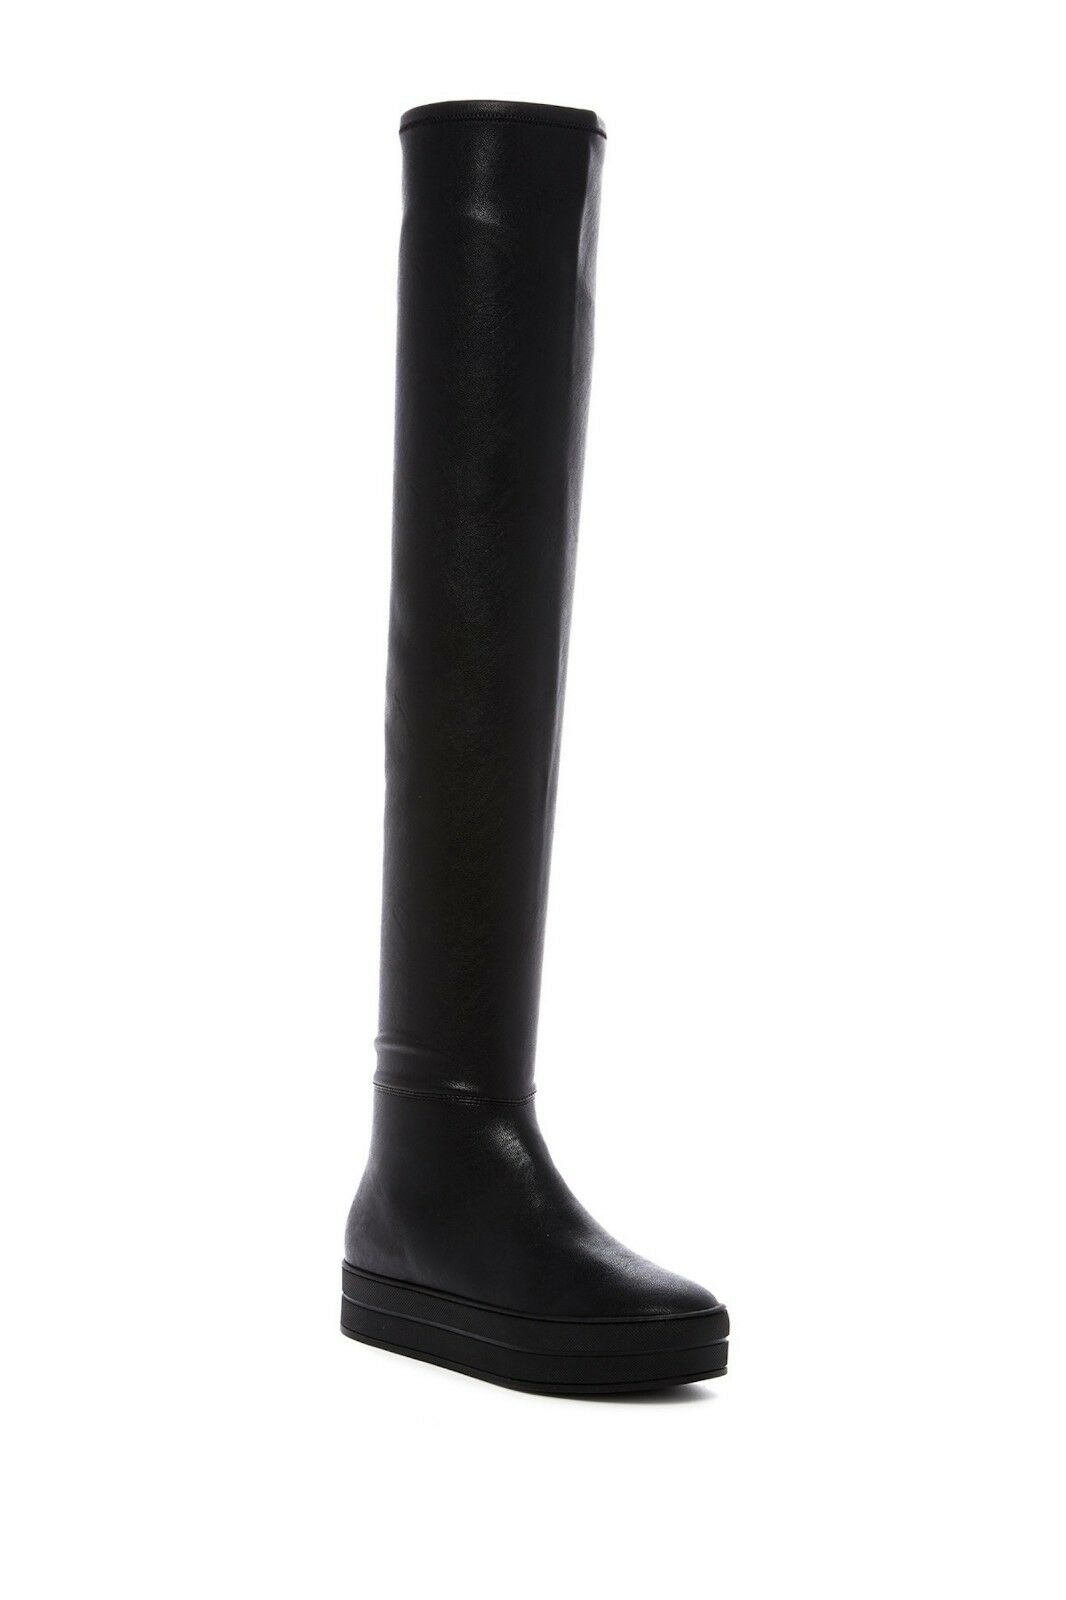 LFL Biggie Biggie Biggie Platform Over-the-Knee Boot Black Sz  129 NEW eb4c90